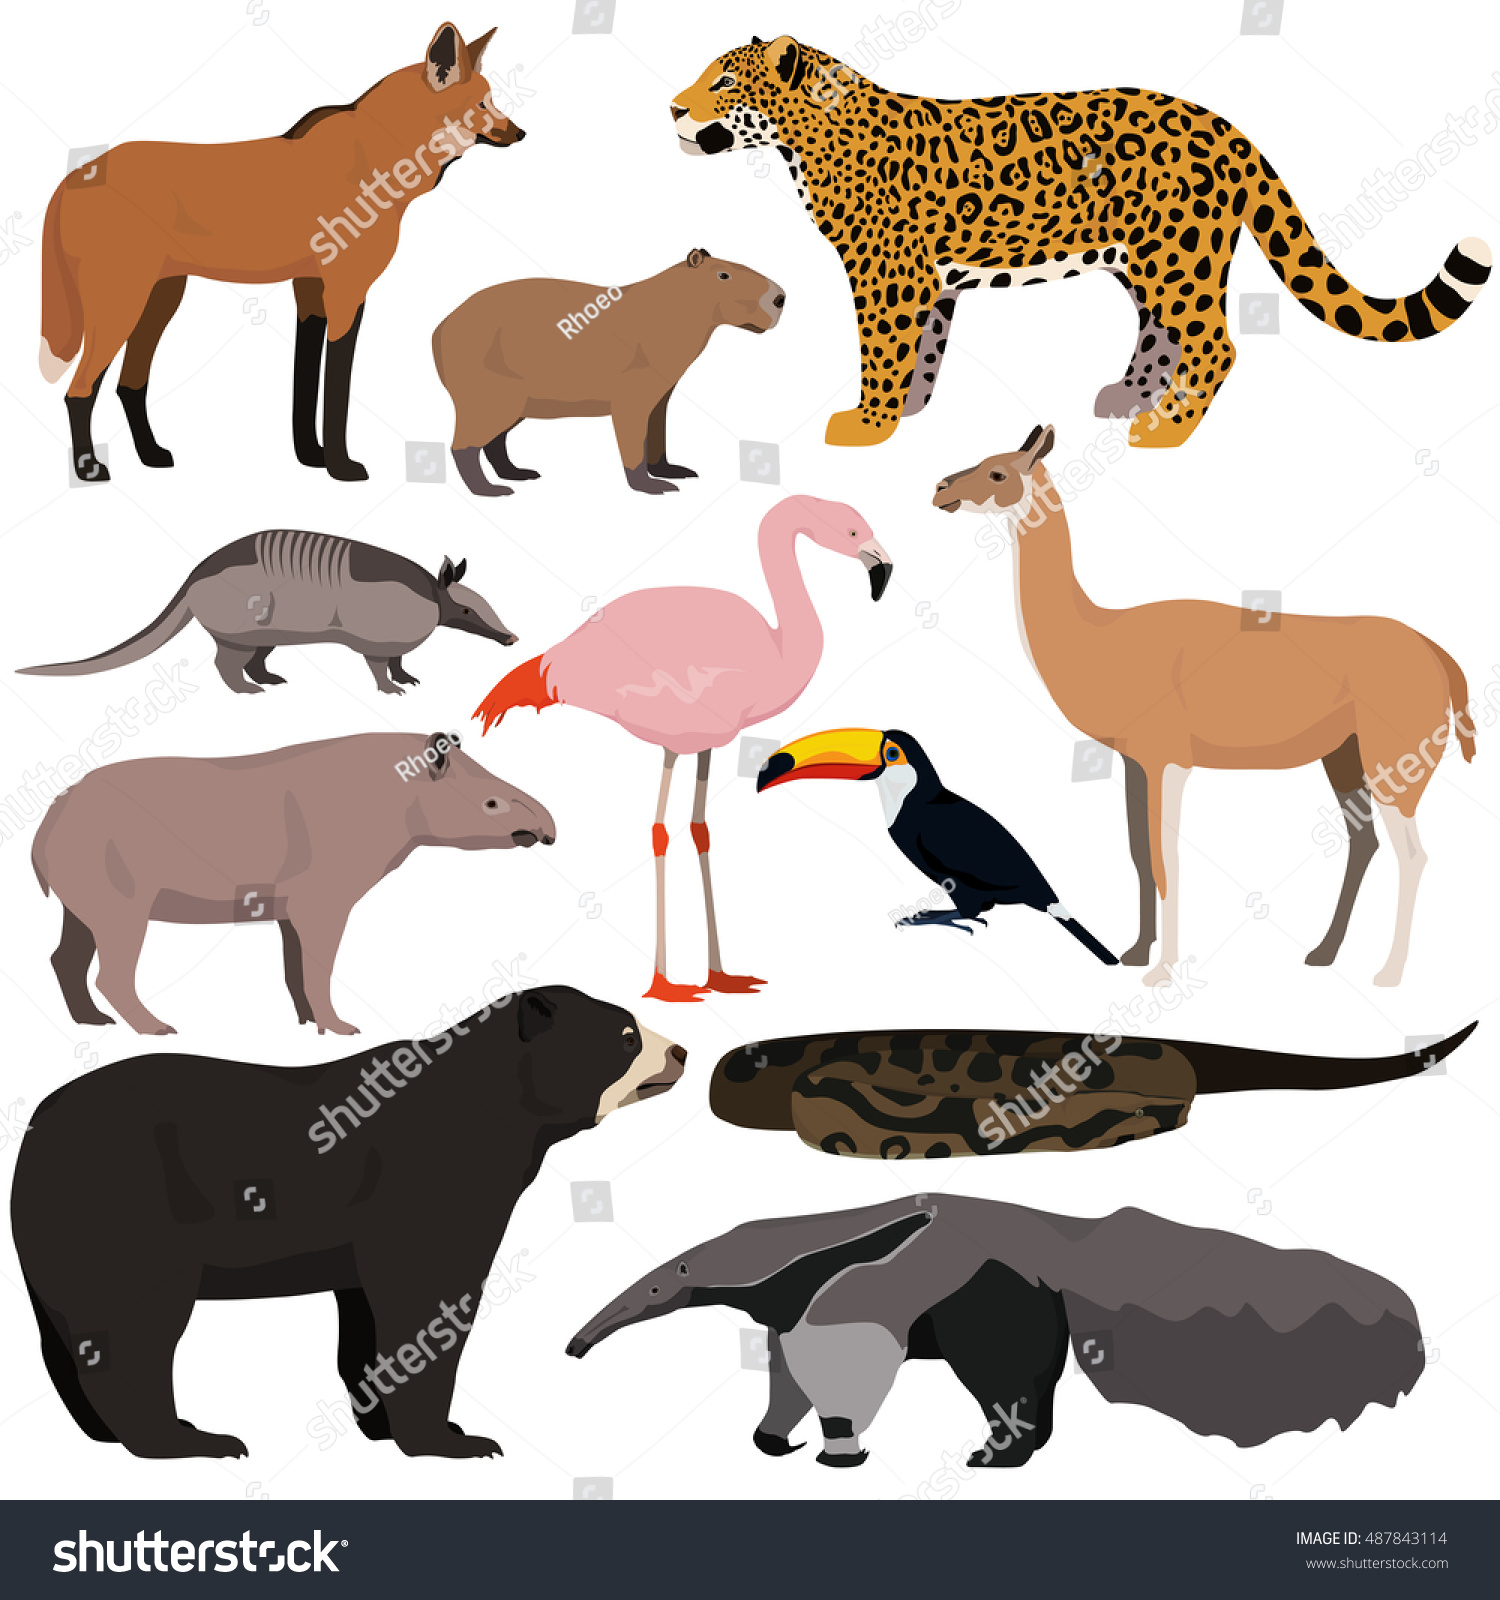 Vector Set Cartoon South American Animals Vector de stock487843114 ...